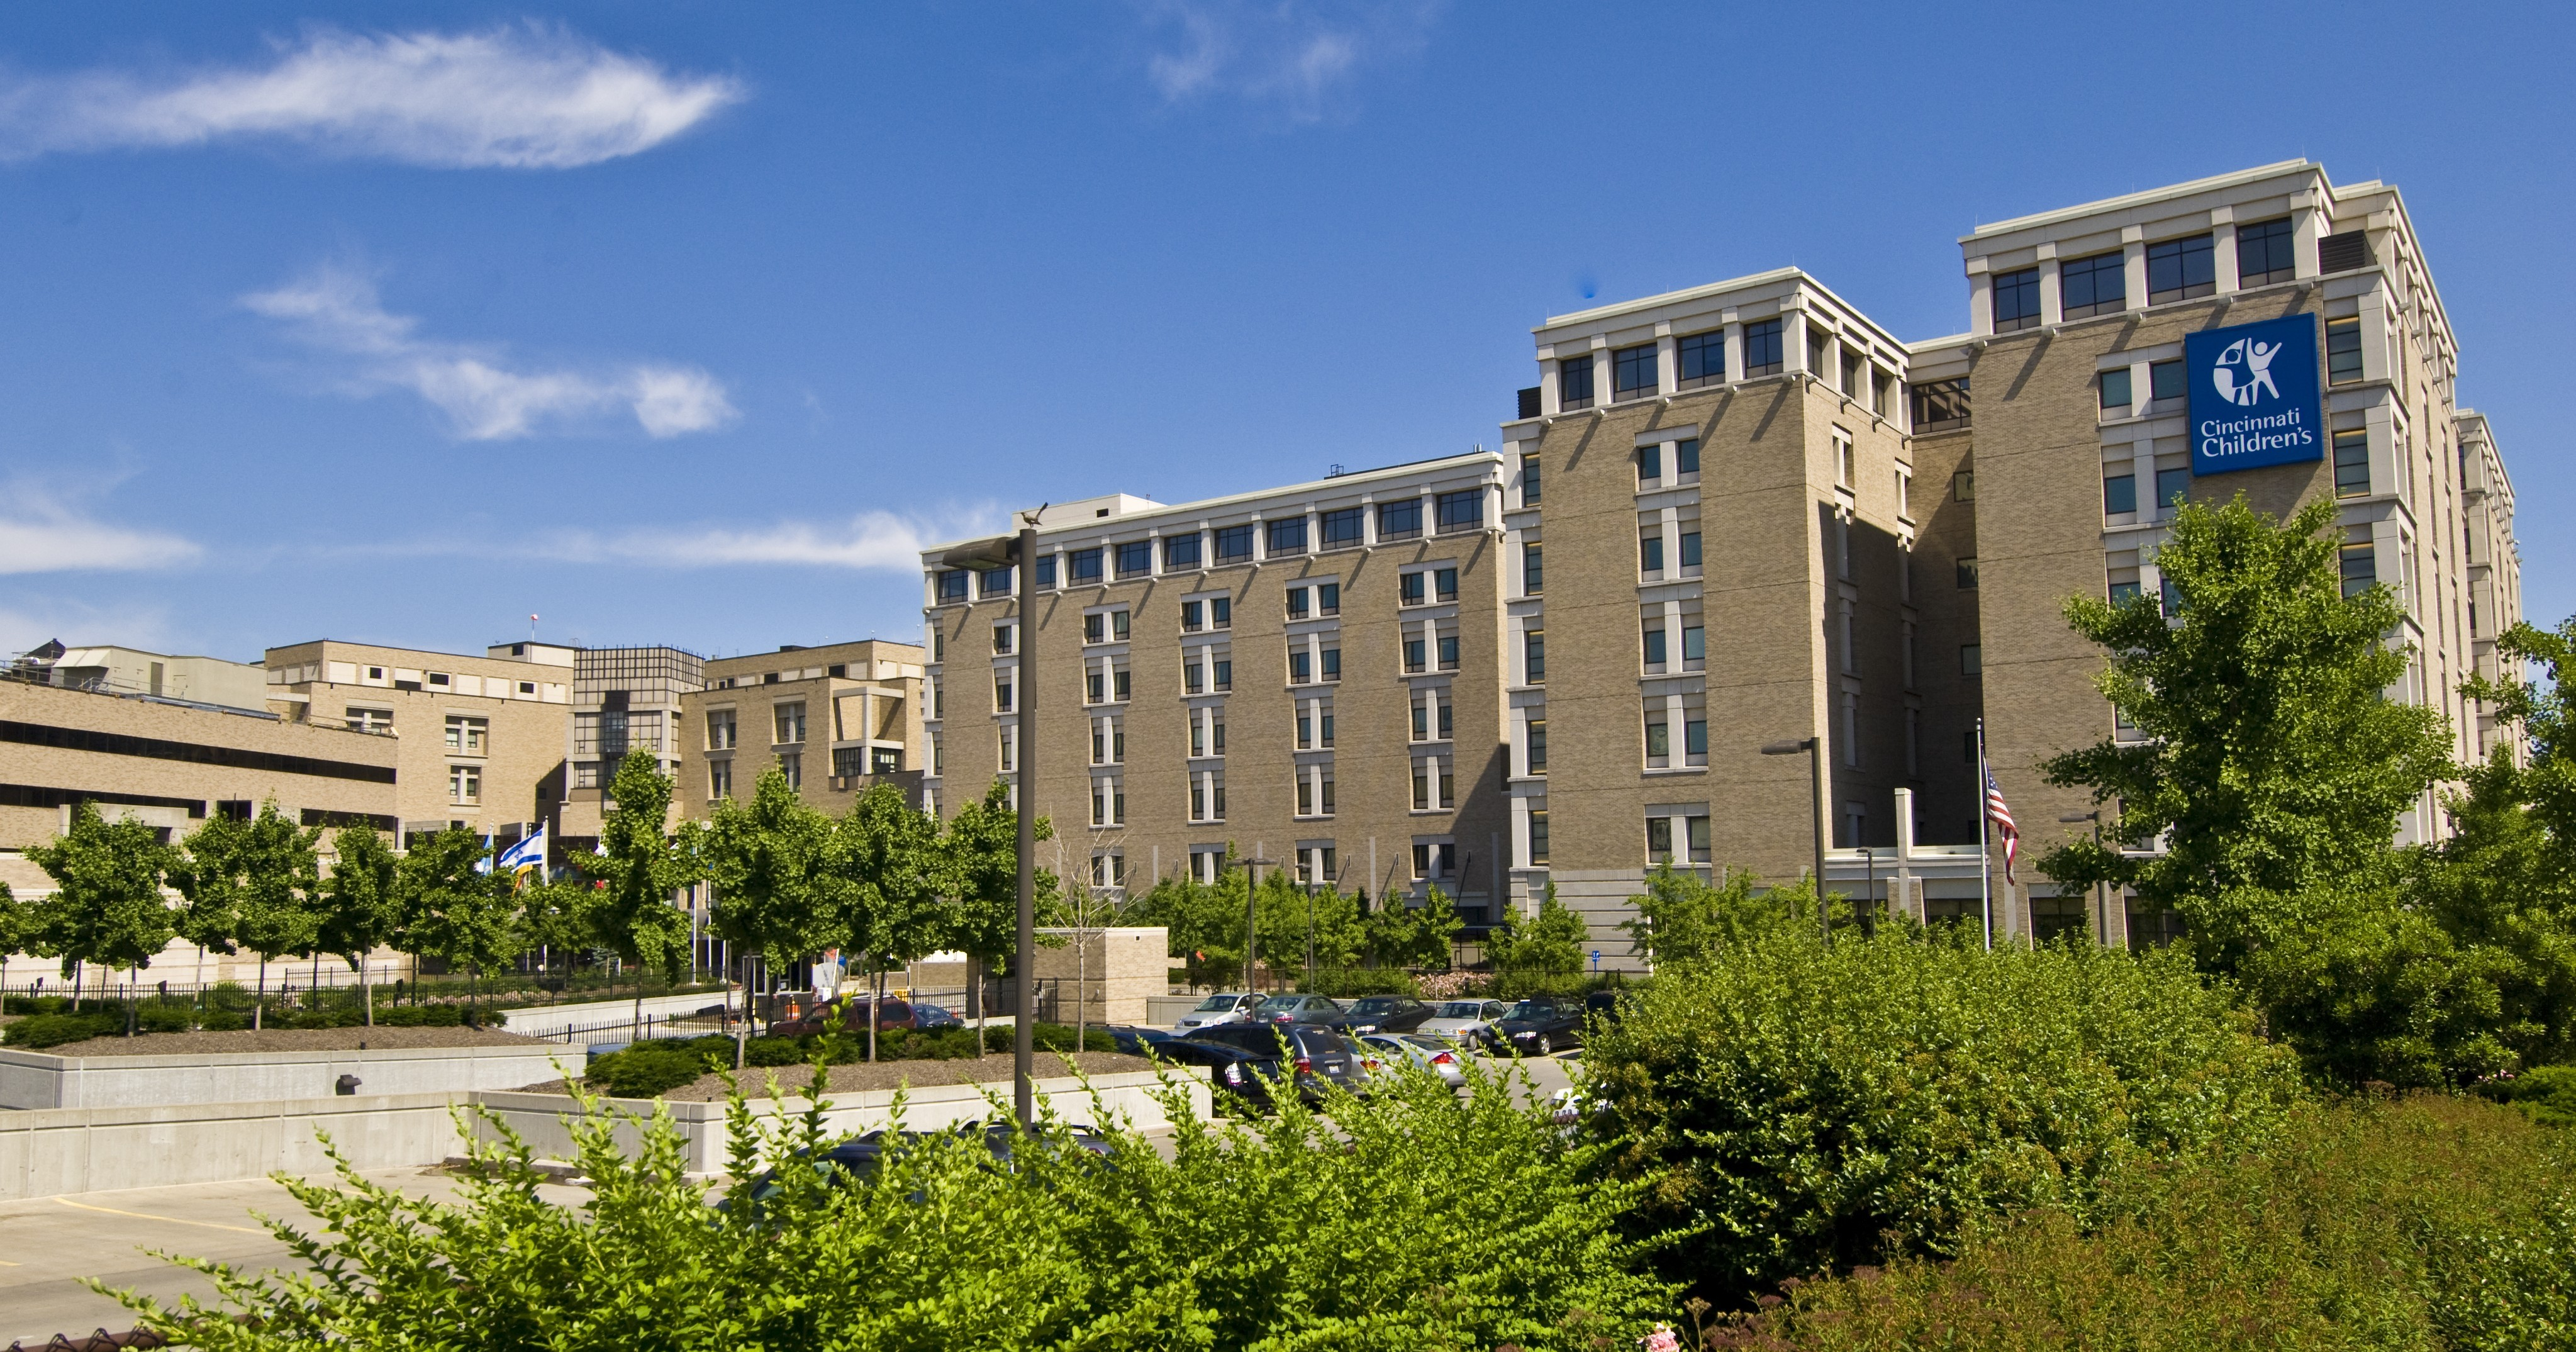 We are proud to support The Heart Institute at Cincinnati Children's Hospital Medical Center.